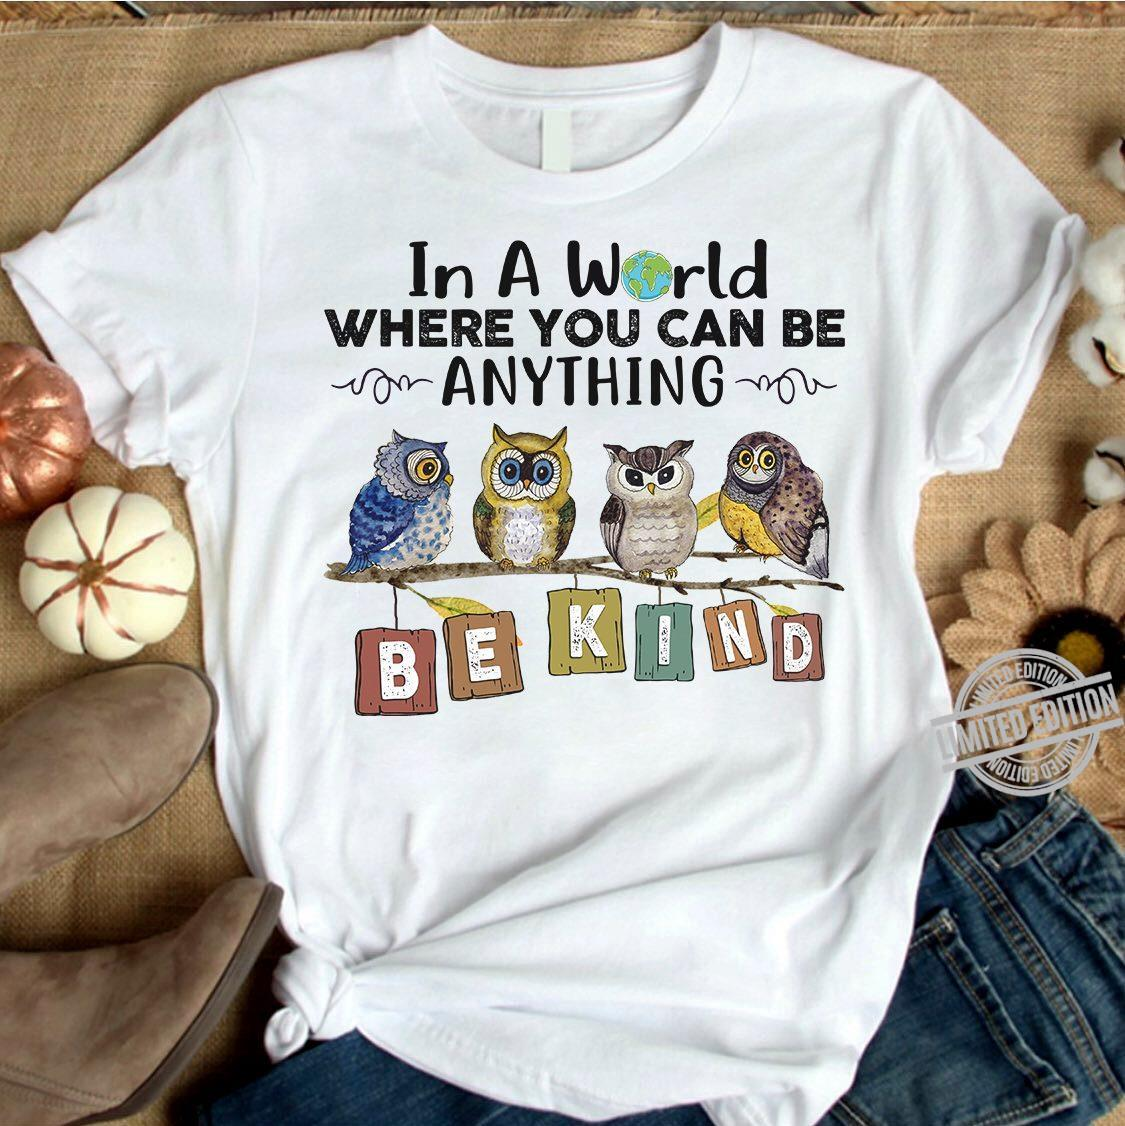 A Catbird In a world where you can be anything be kind shirt